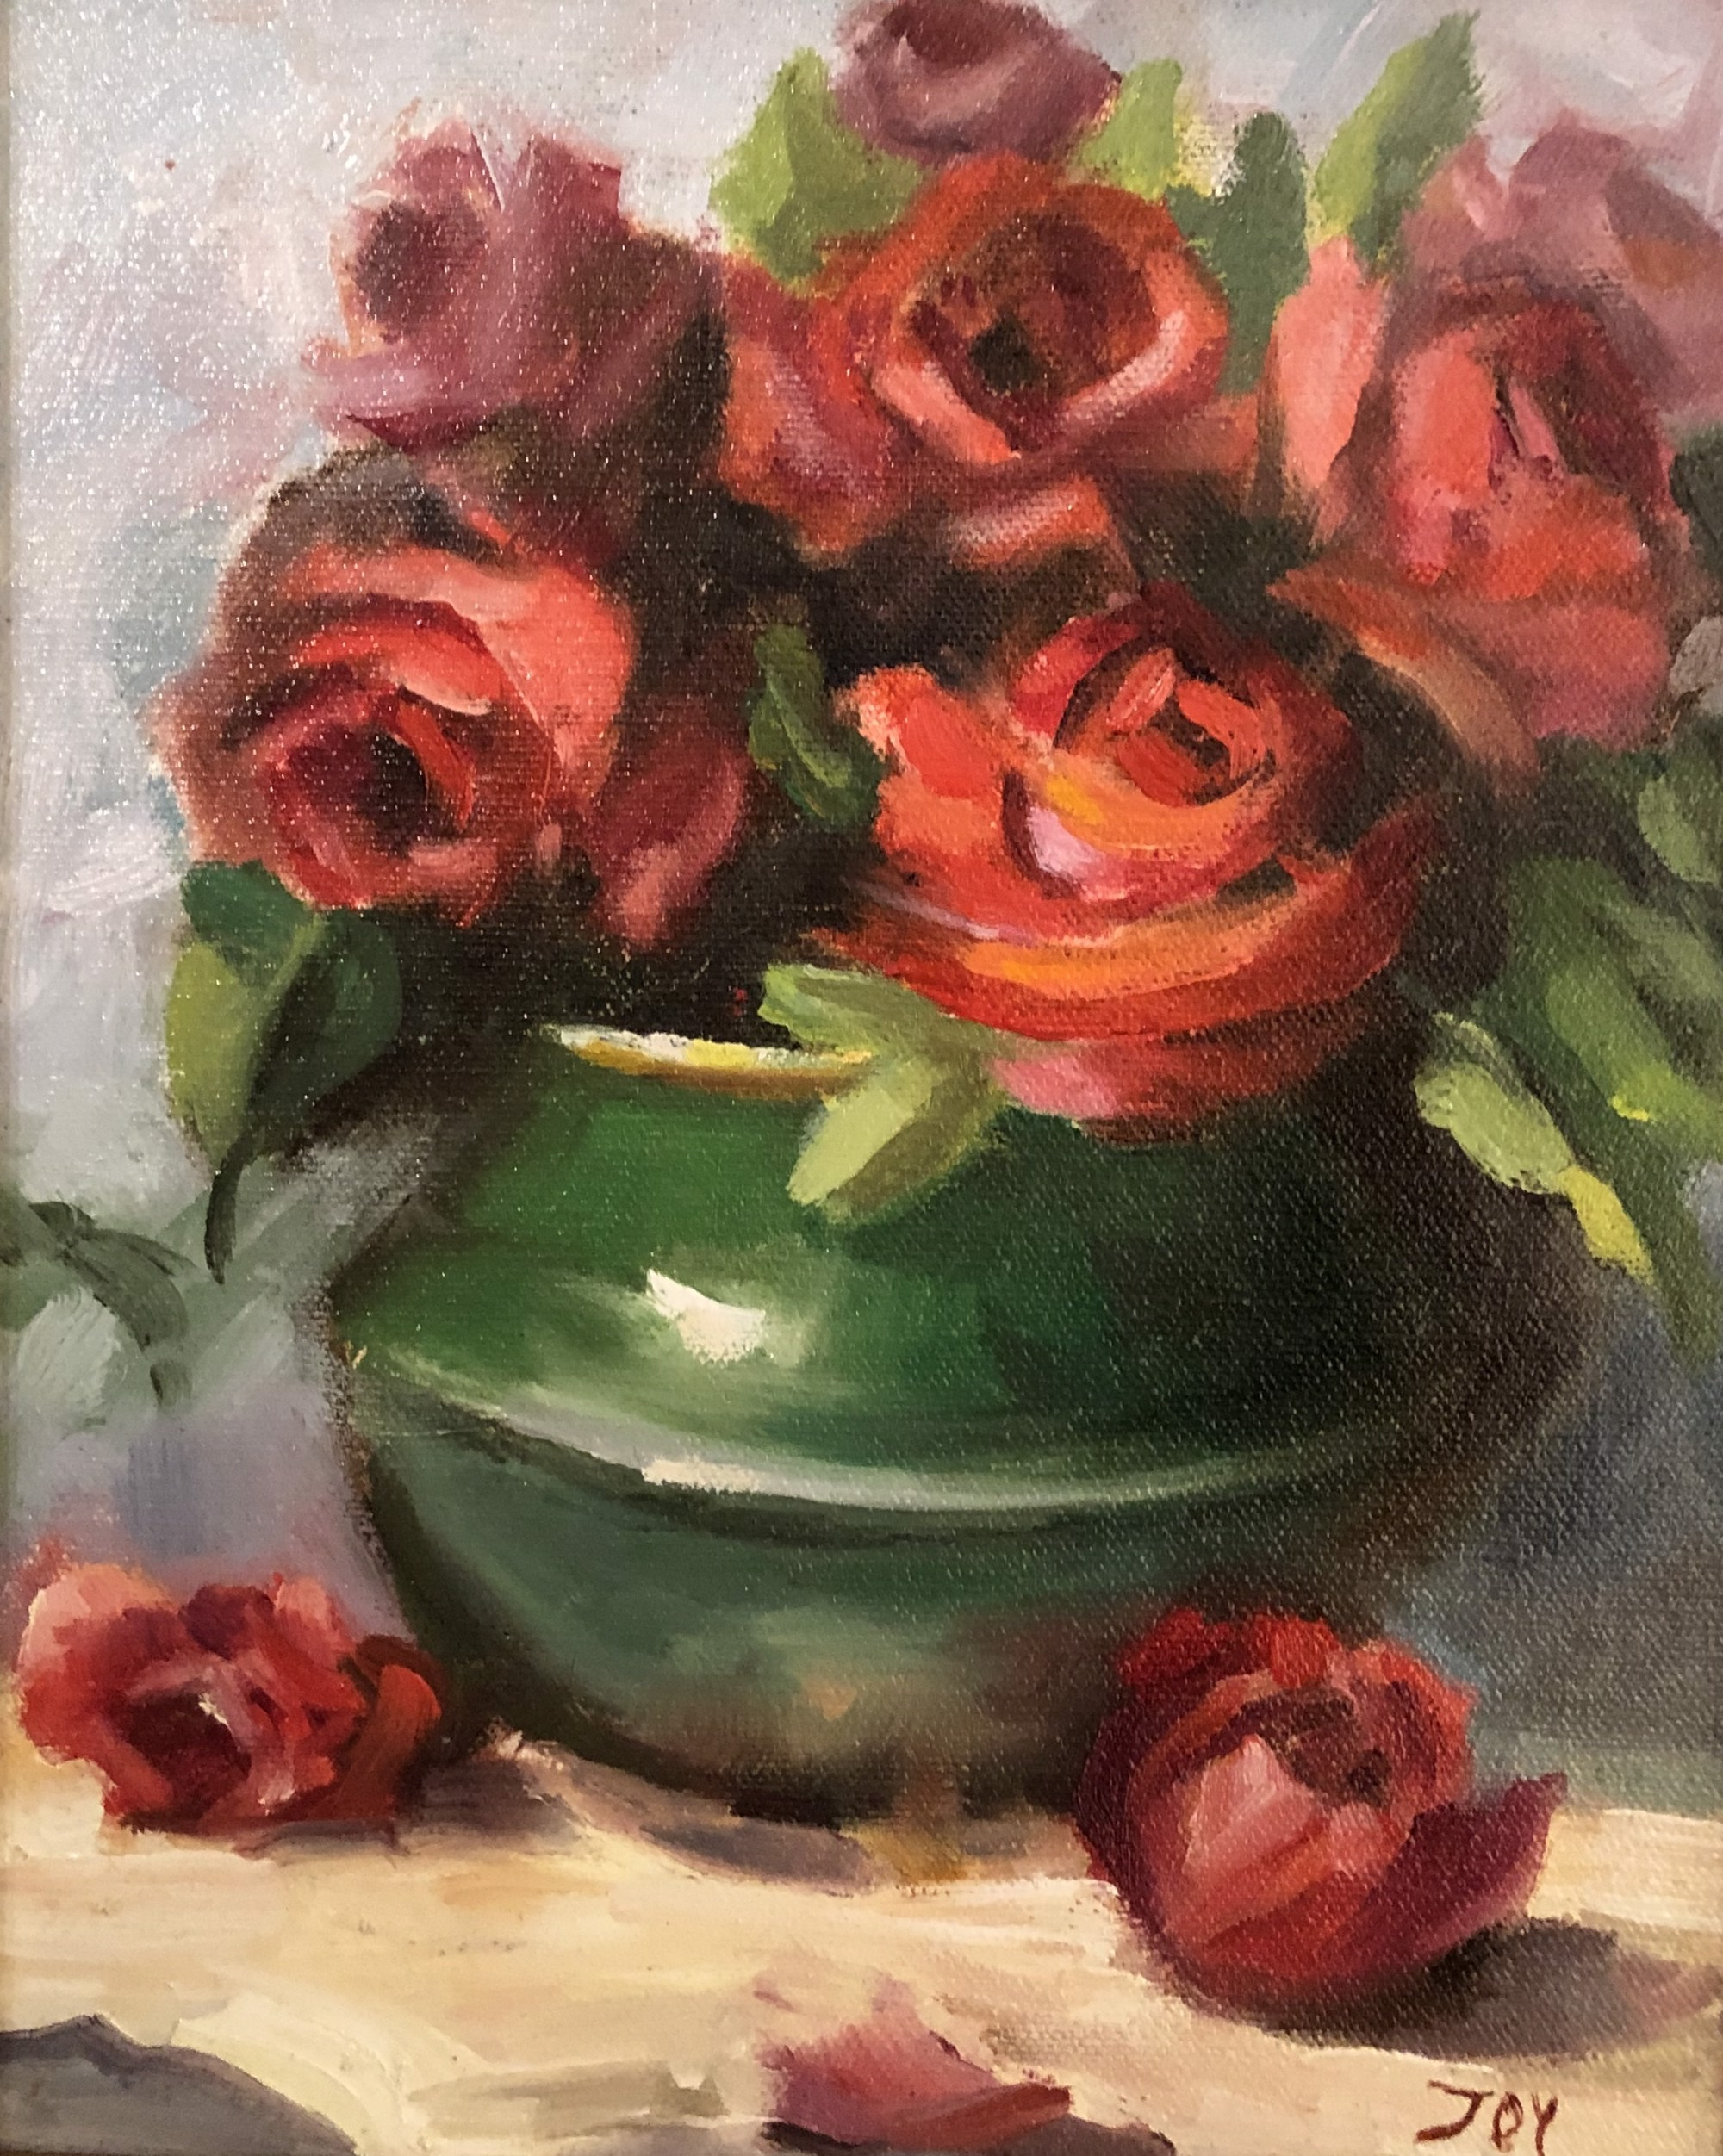 Red Roses, Green Vase by JOY